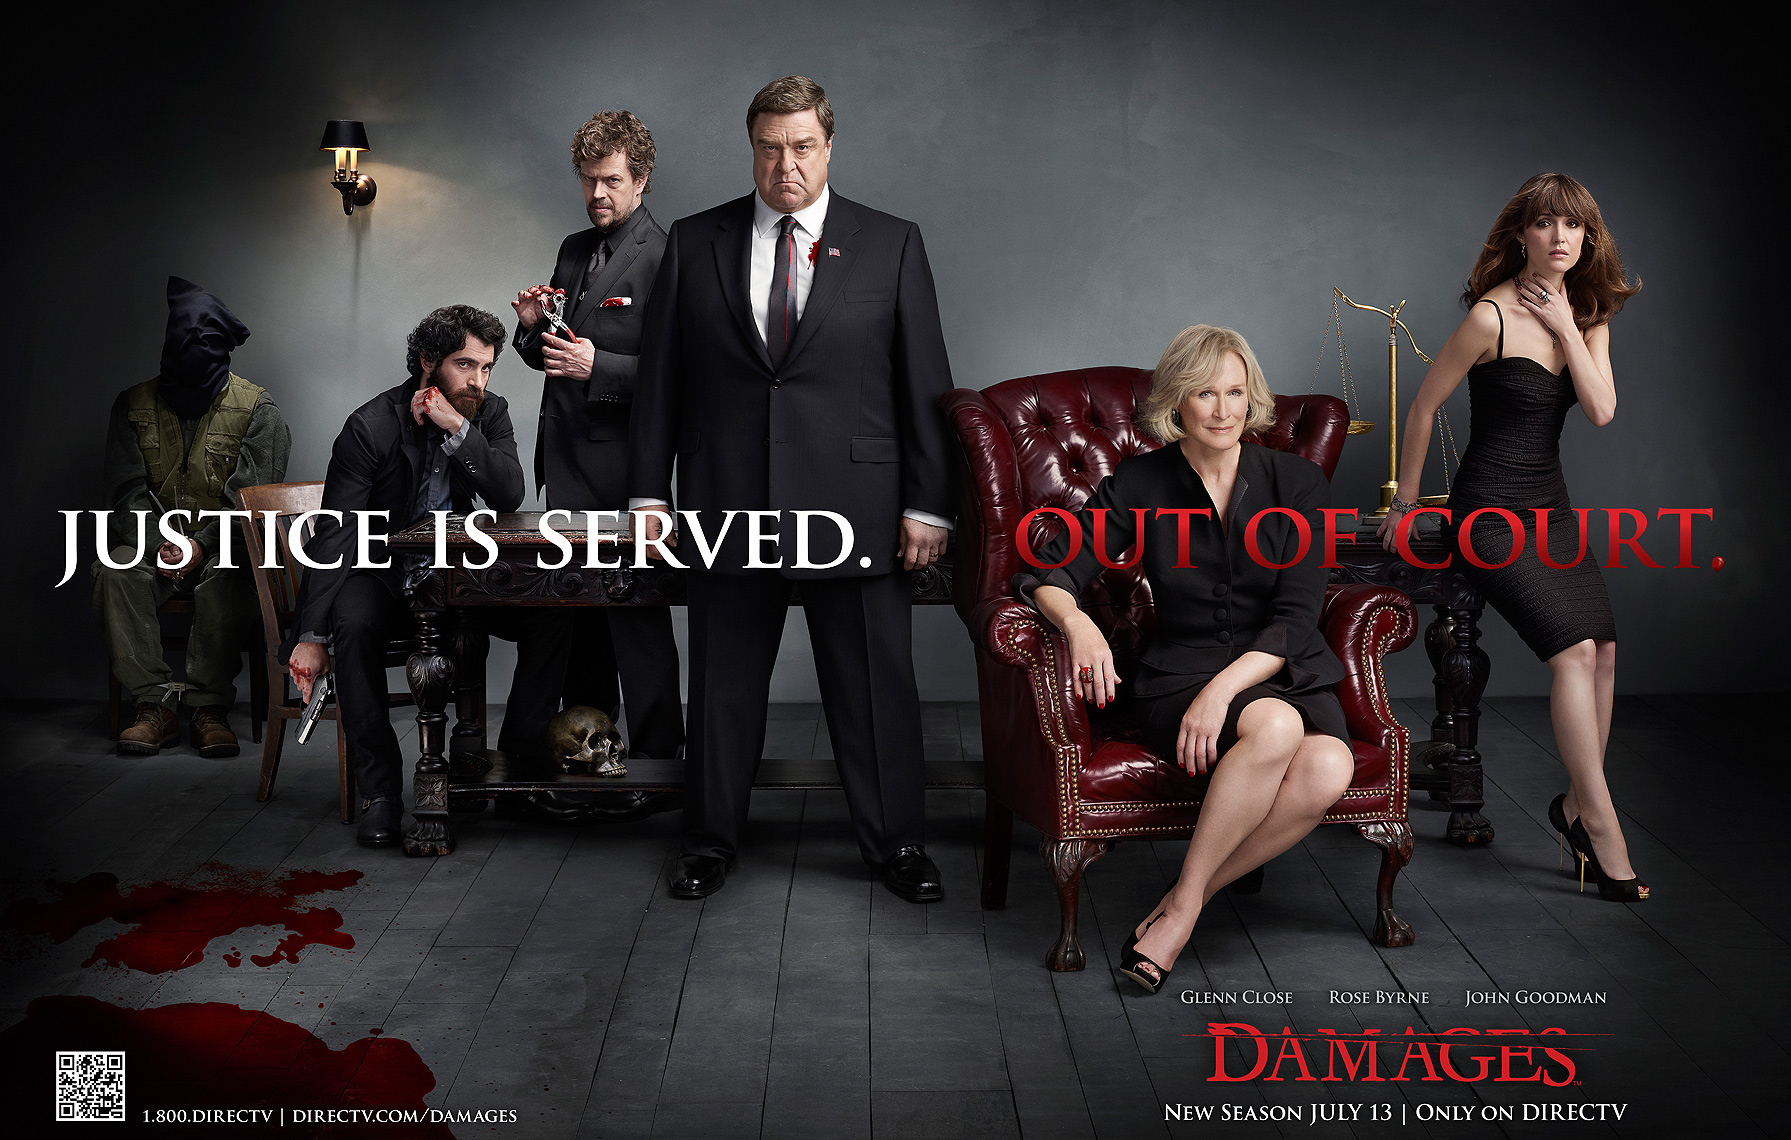 Damages-S4-by-Robert-Ascroft-01.jpg